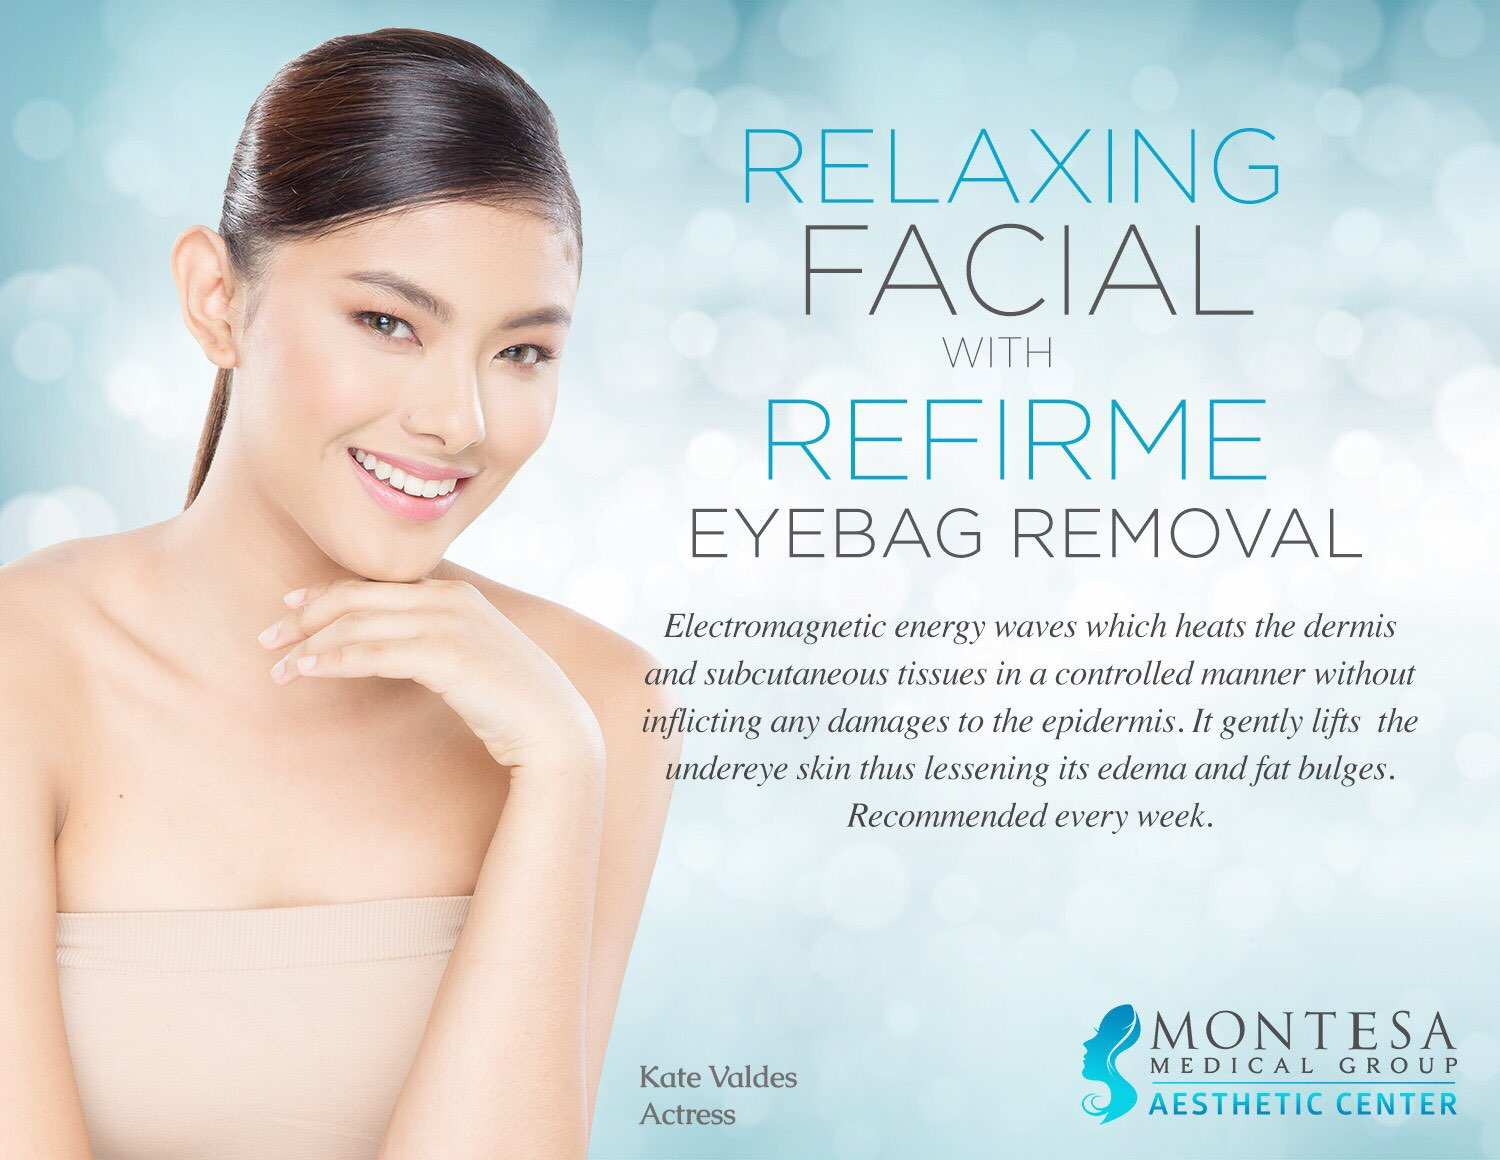 Relaxing Facial With Refirme Eyebag Removal Montesa Medical Group